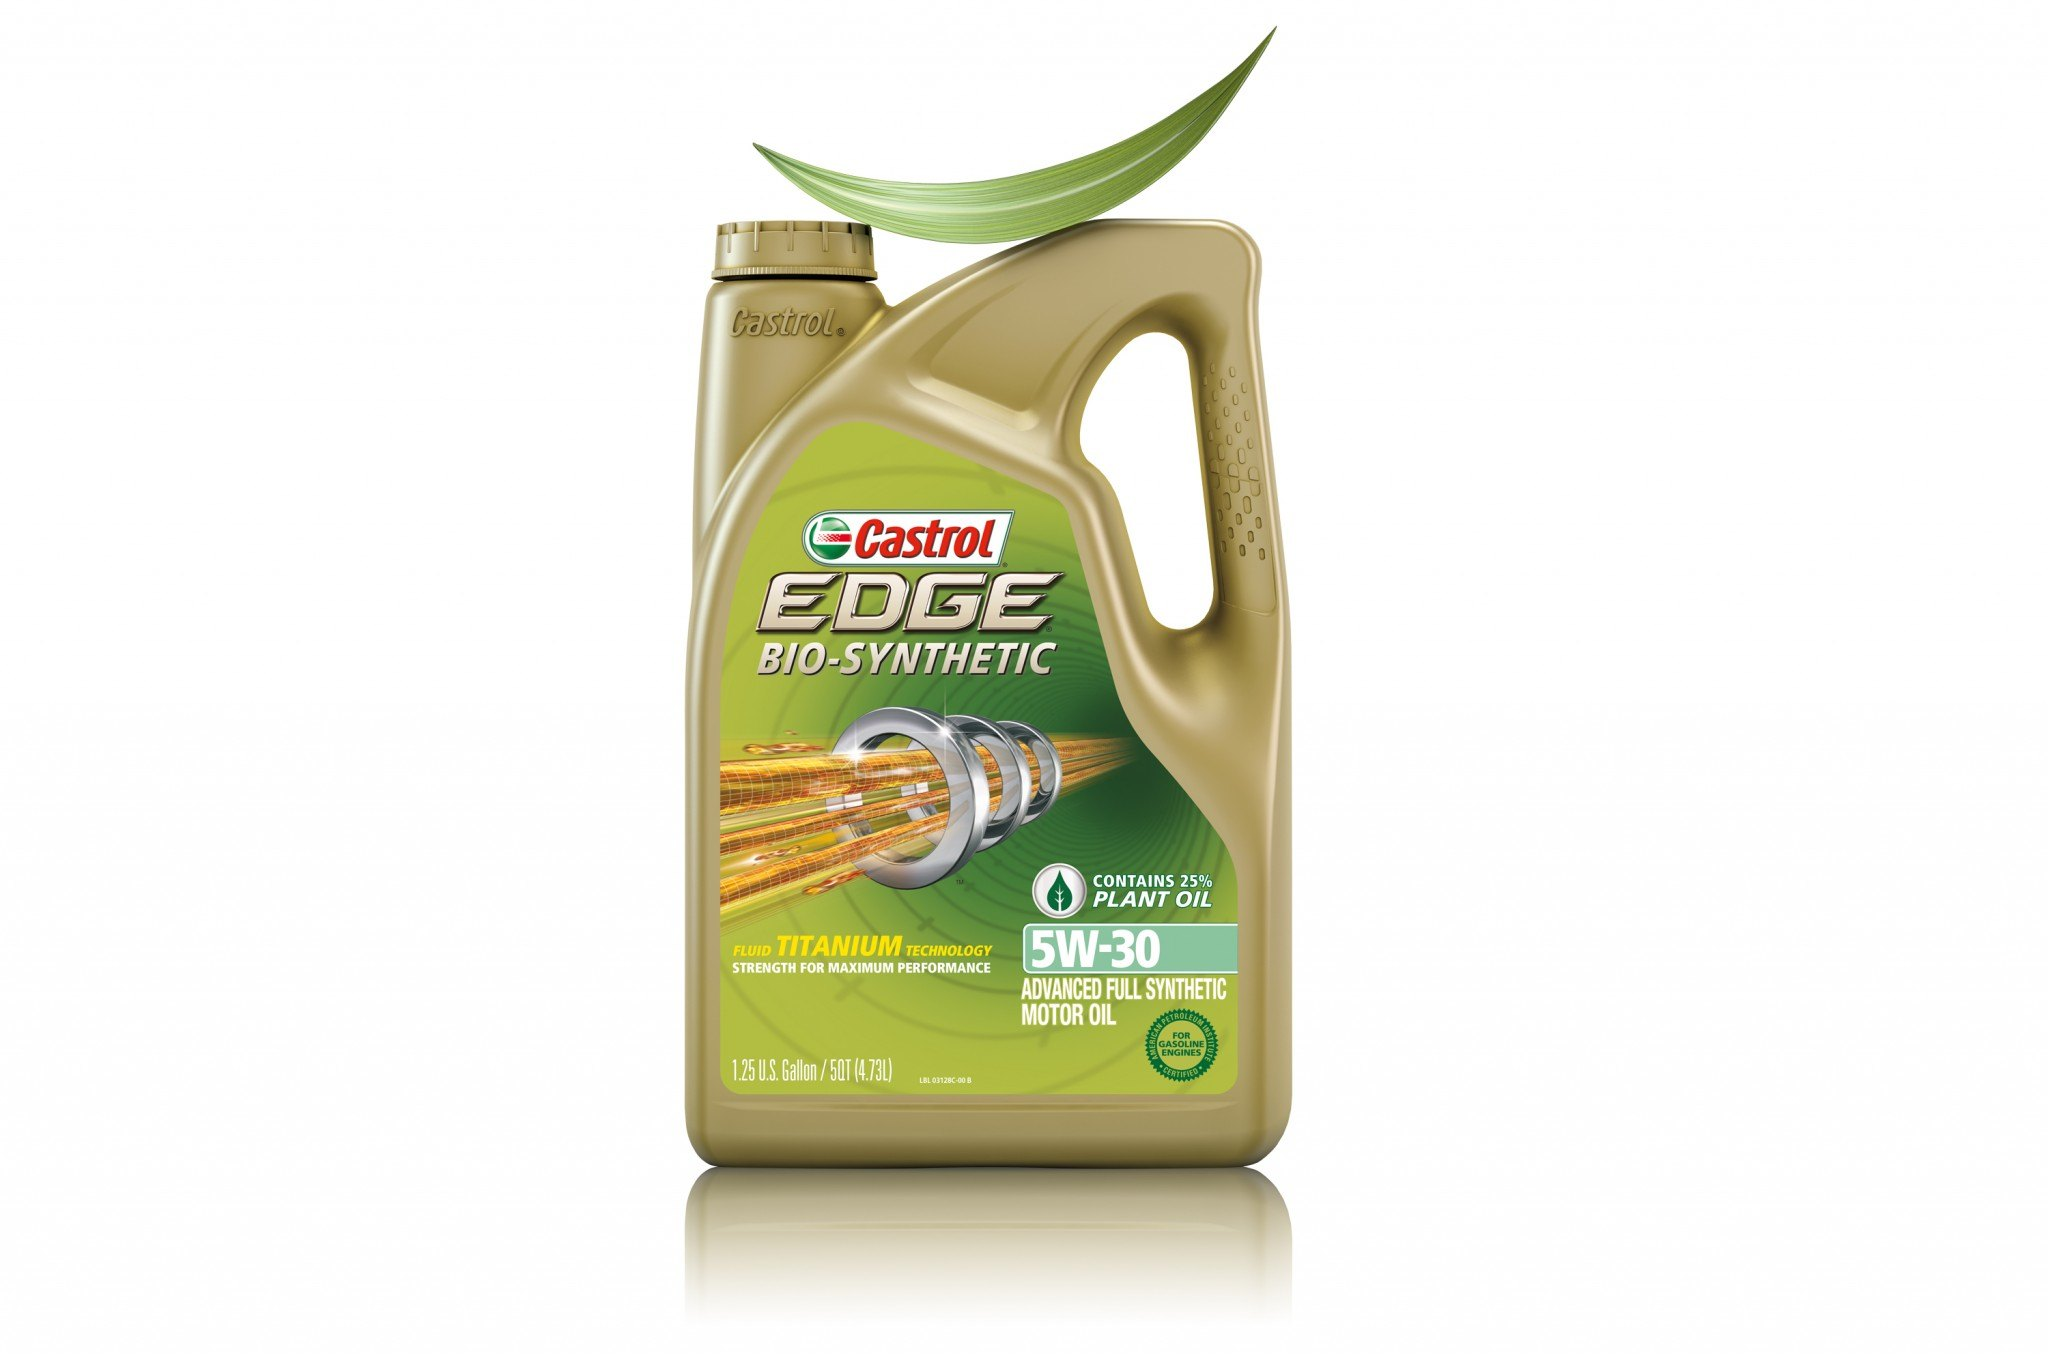 wmh_castrol_edge_biosynthetic_packaging